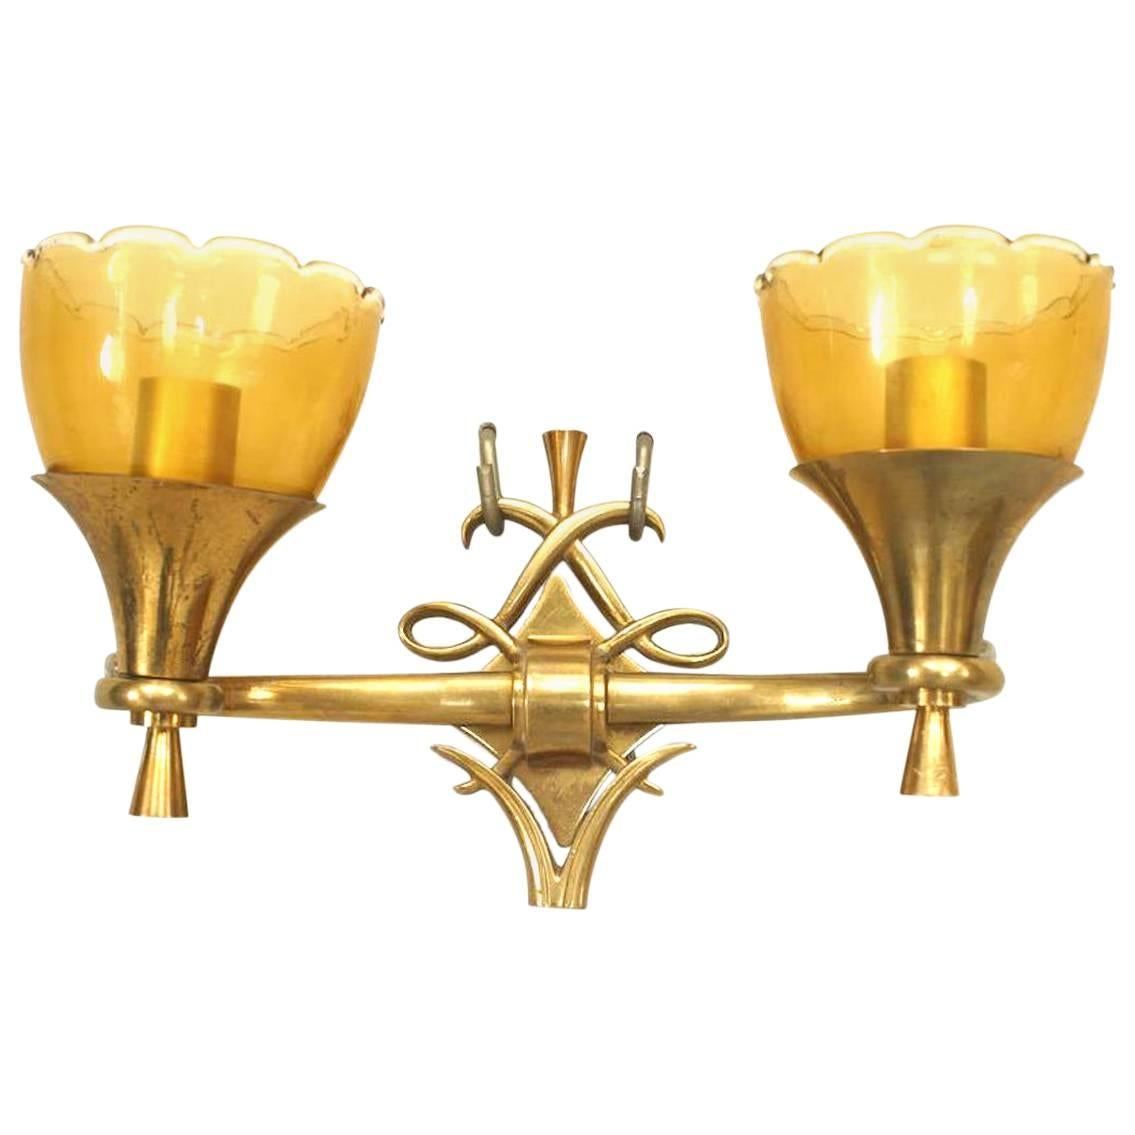 French Mid-Century Brass and Glass Wall Sconces